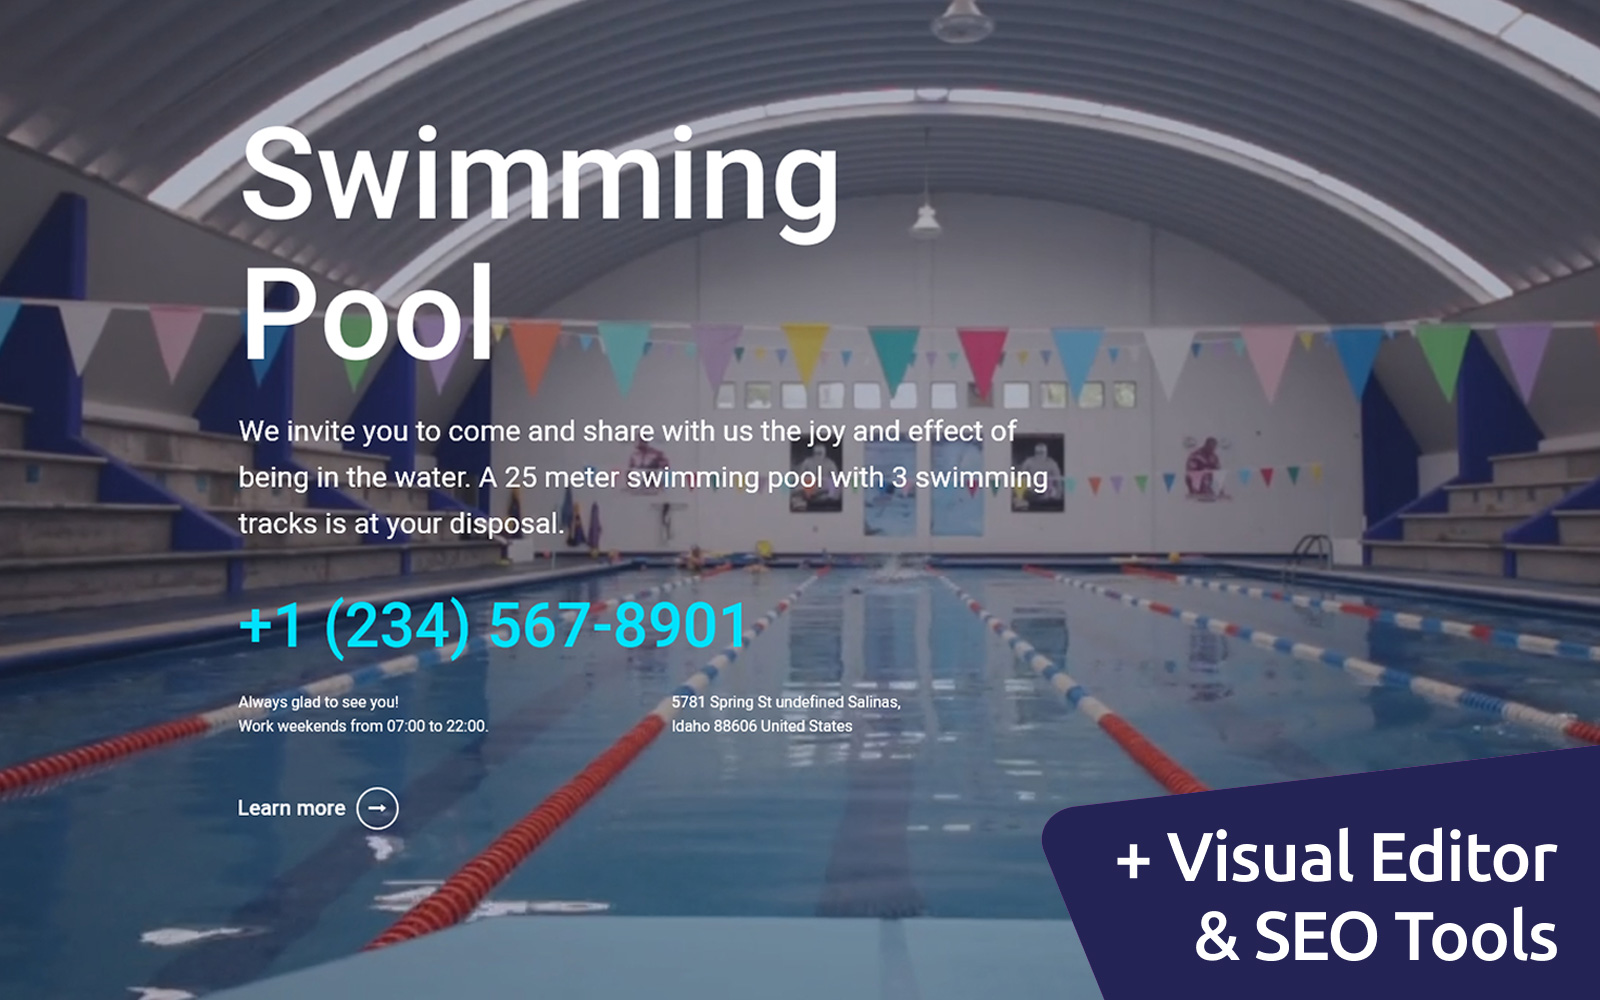 Swimming Pool Moto CMS 3 Template